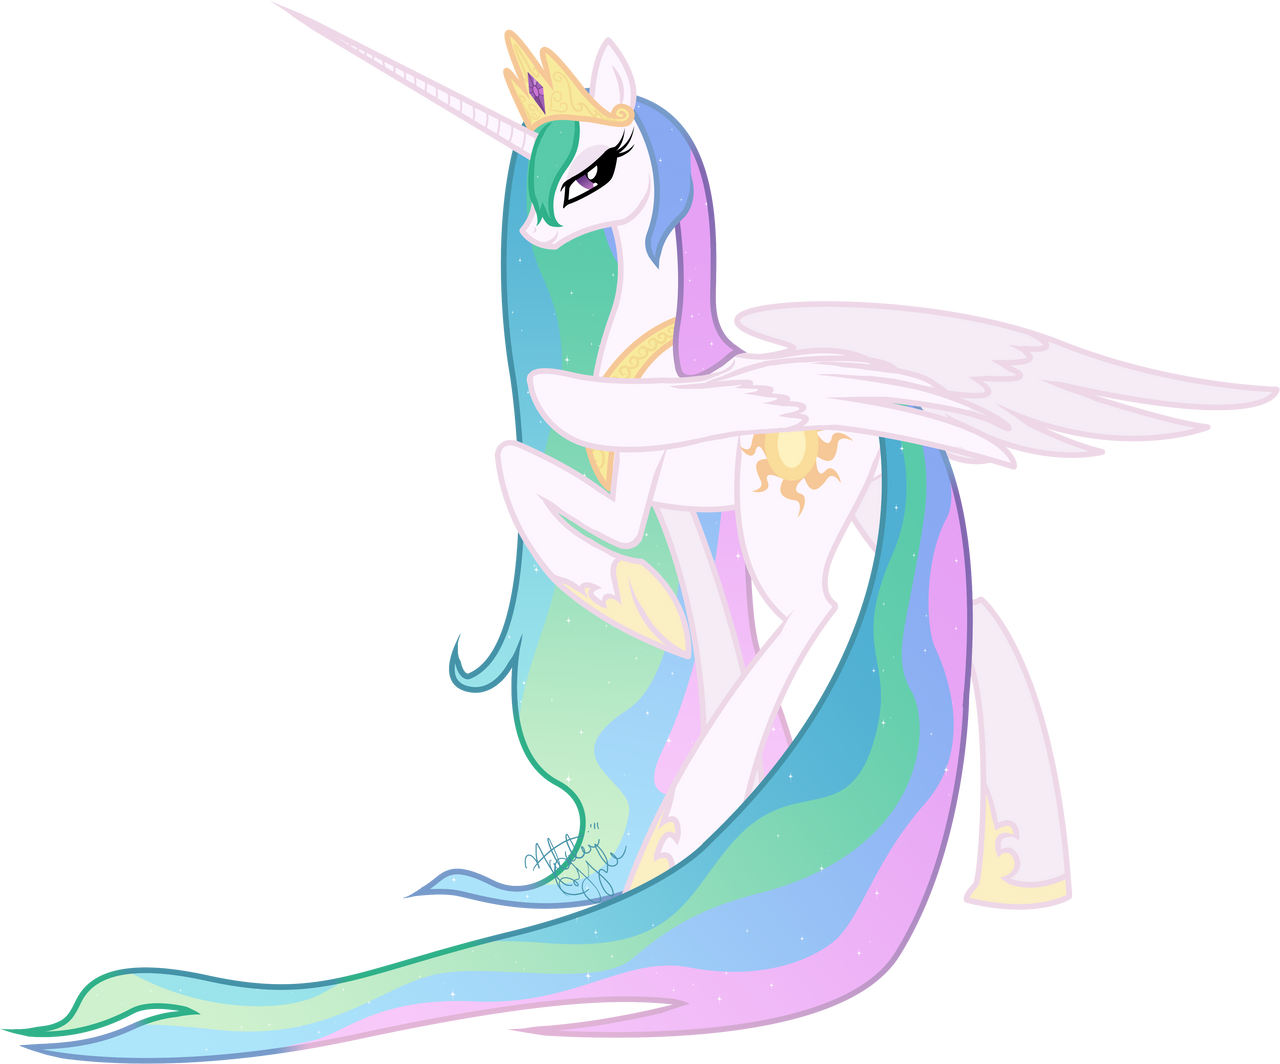 mlp_fim_fun_in_the_sun_by_emeralddarkness-d4iz6wi.png